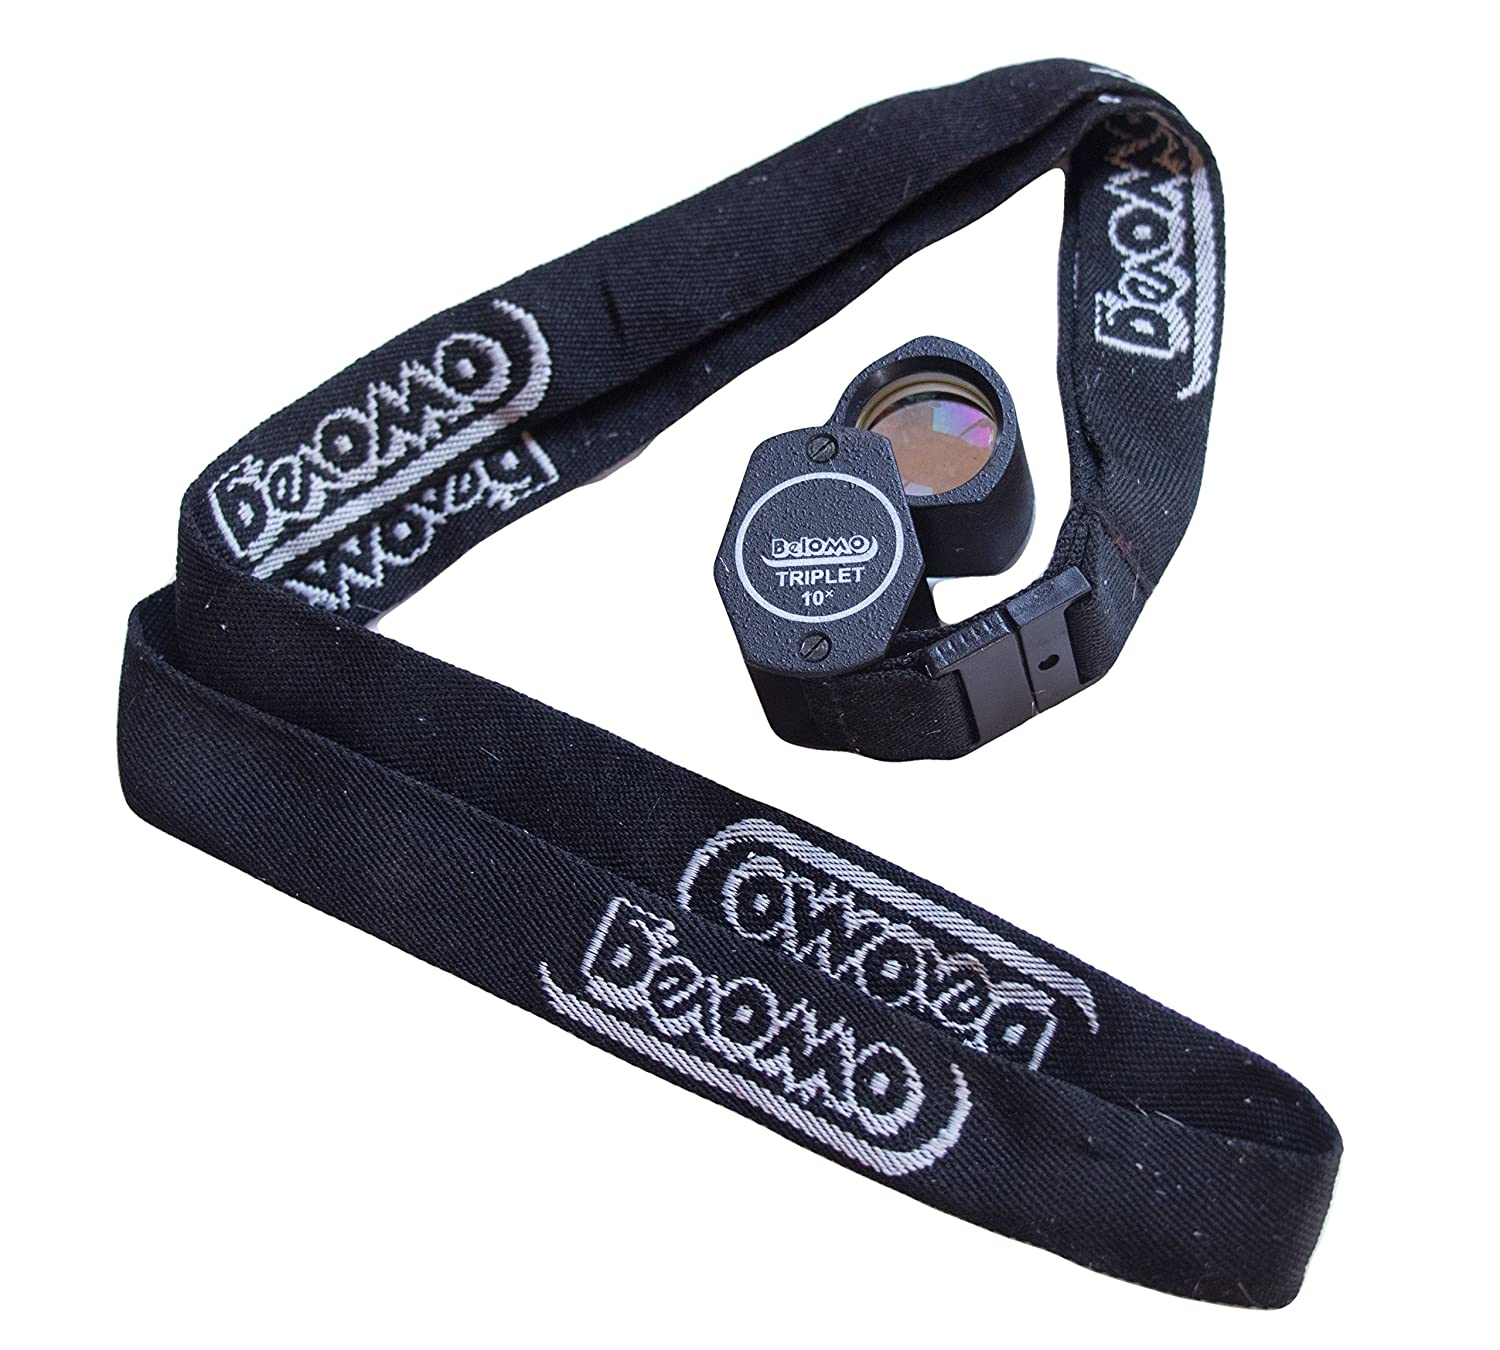 BelOMO 10x Triplet Loupe Magnifier with Attached Deluxe BelOMO Logo Lanyard, Optical Glass with Anti-Reflection Coating for a Bright, Clear and Color Correct View BelOMA LP-3-10x-B